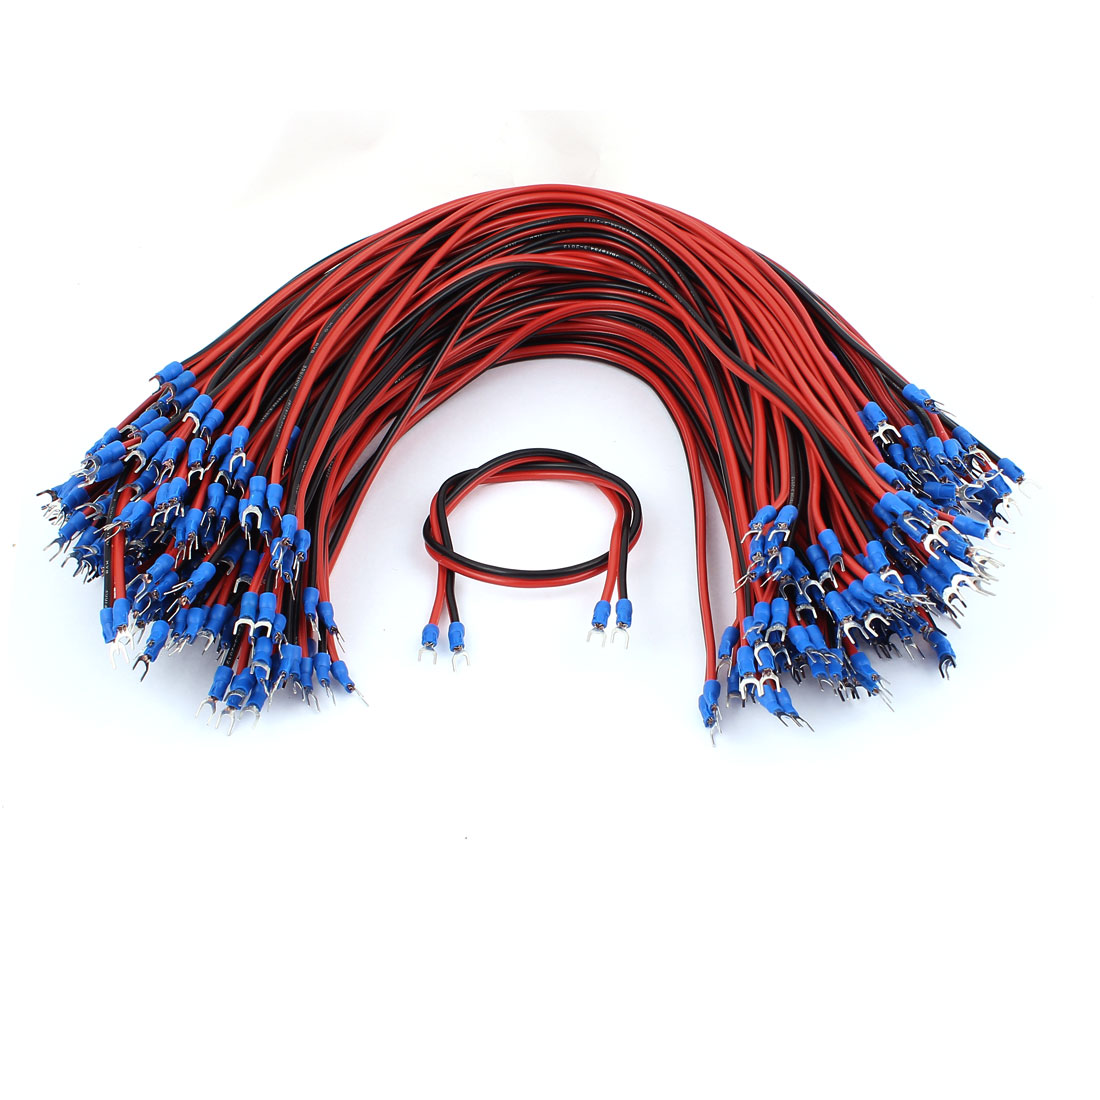 Fork Terminal RVB Parallel Lines Two Core LED Lamp Signal Cable 45CM 100 Pcs